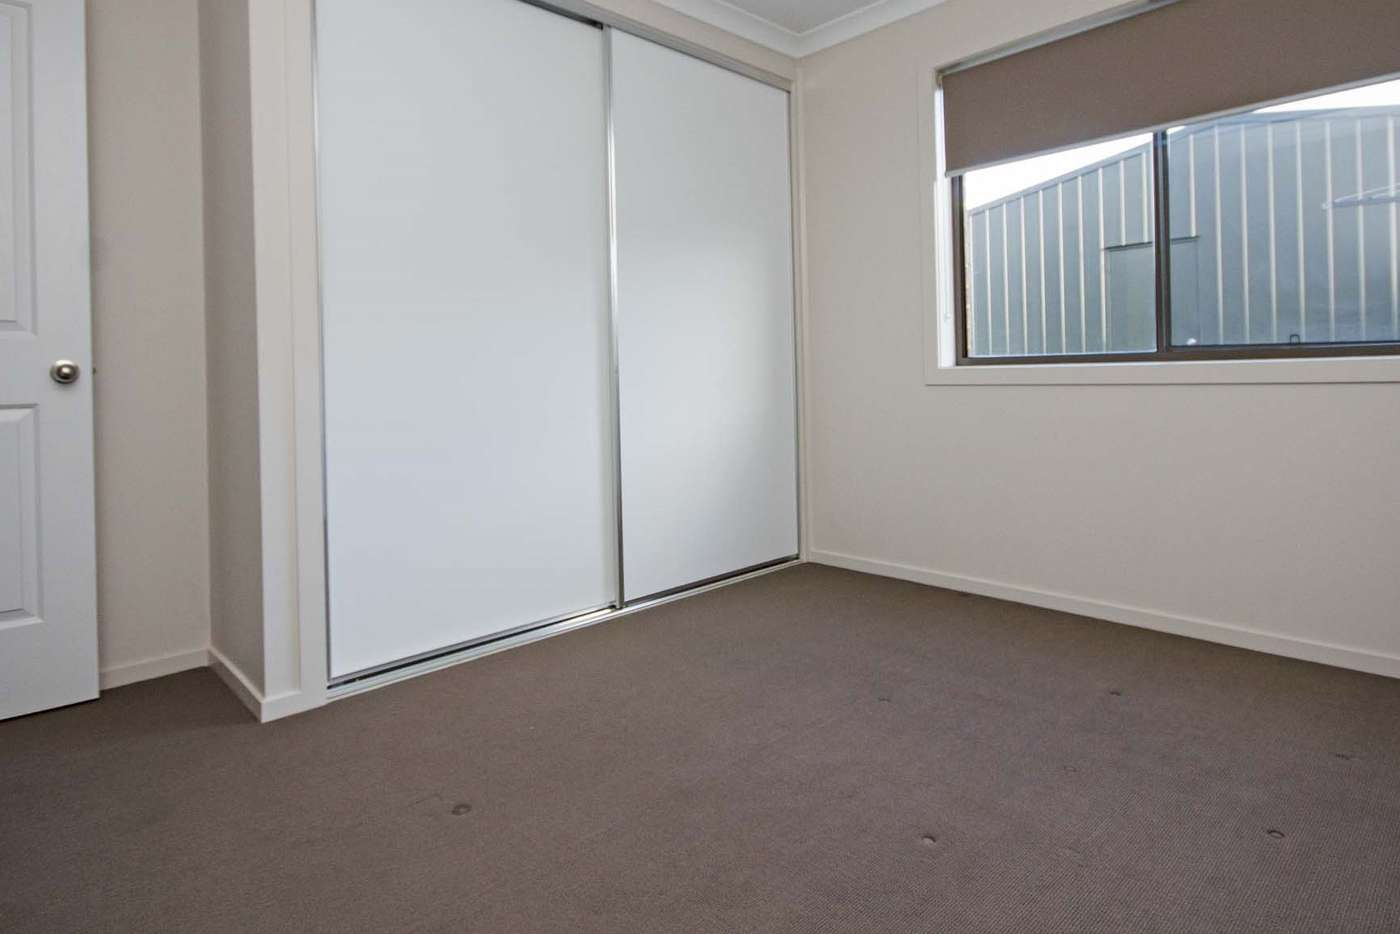 Seventh view of Homely house listing, 37 Kenna Street, Wodonga VIC 3690